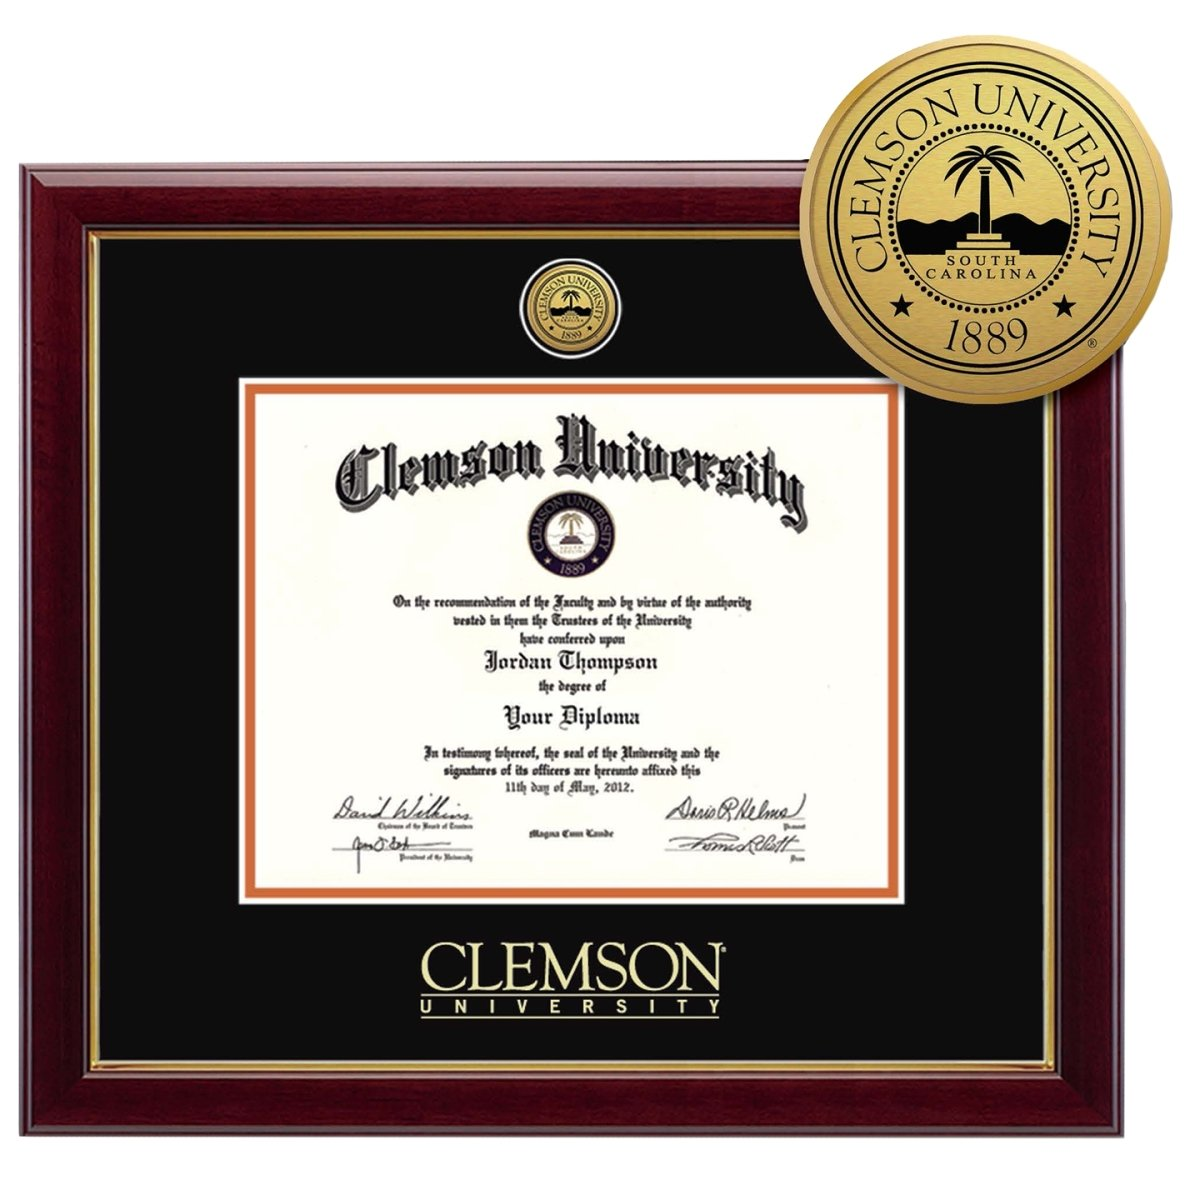 Clemson University Gold Engraved Diploma Frame - Mr. Knickerbocker